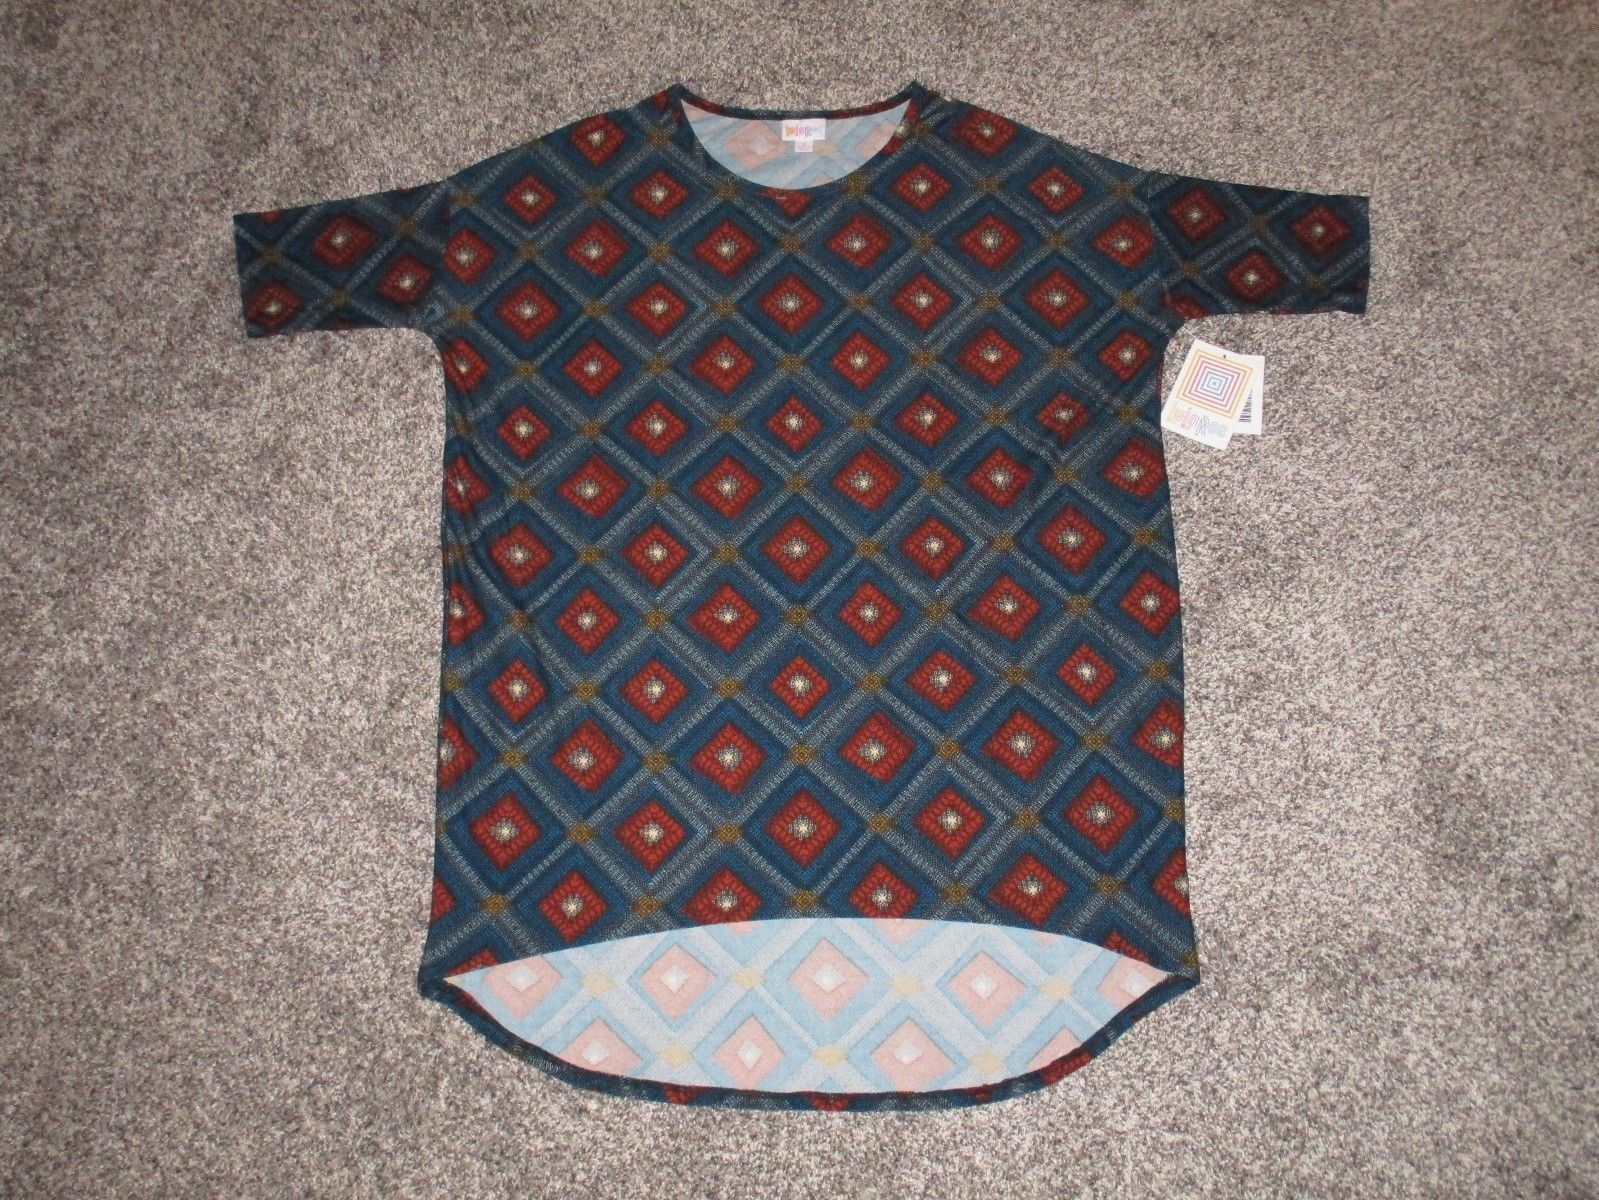 c9609e11e0c26a LuLaRoe Irma Top, Teal Blue & Red, Women's and 50 similar items